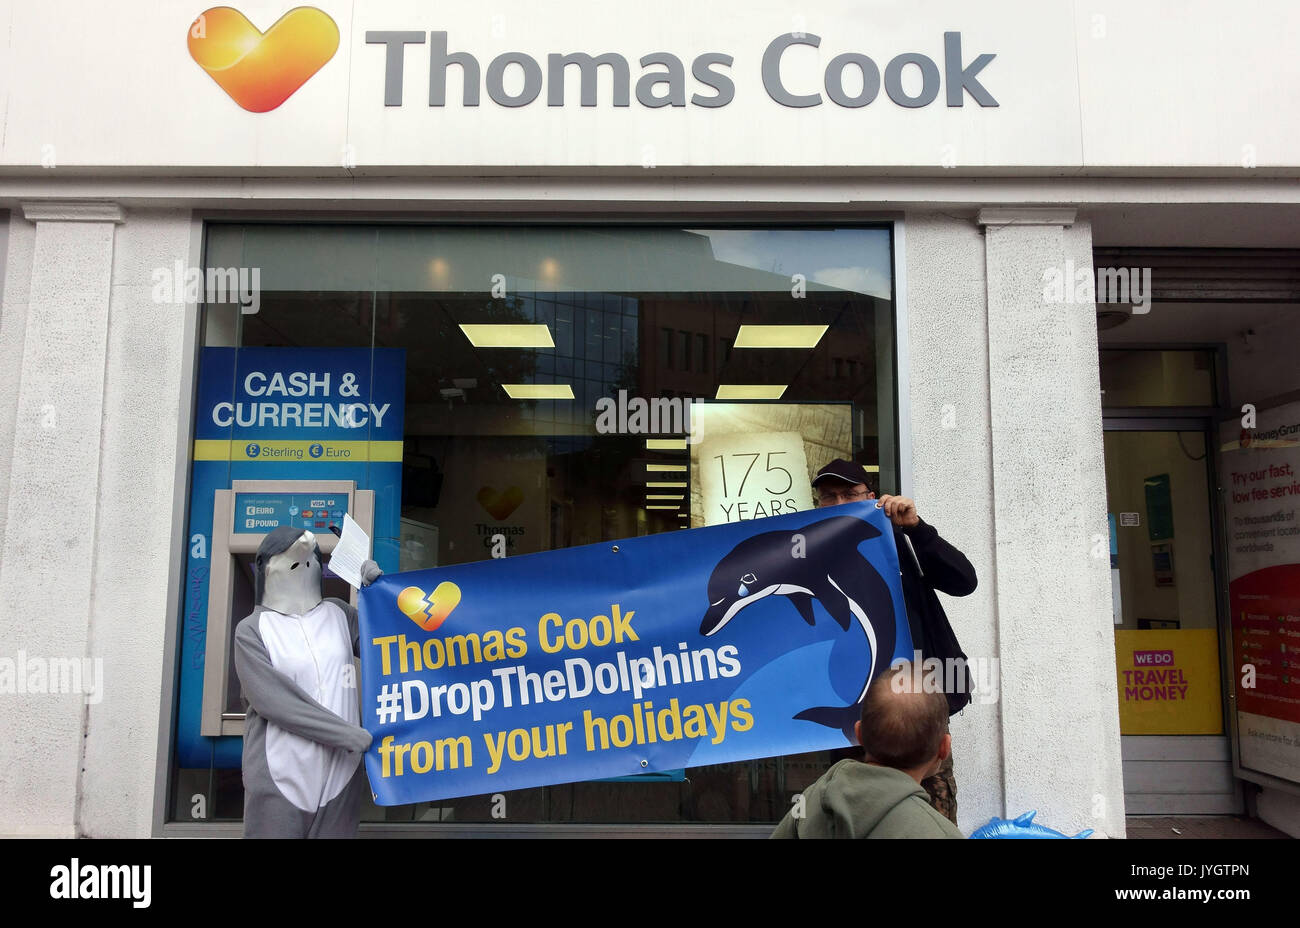 London, UK. 19th August, 2017.  Activists from Dolphin Freedom UK protest outside branch of Thomas Cook travel agents in Islington against 'cruel dolphin shows in Mexico and Caribbean'. The campaign claim that 'swim with dolphins' activities causes suffering to the sea animals. Please credit pictures by Jeffrey Blackler/Alamy Live News - Stock Image